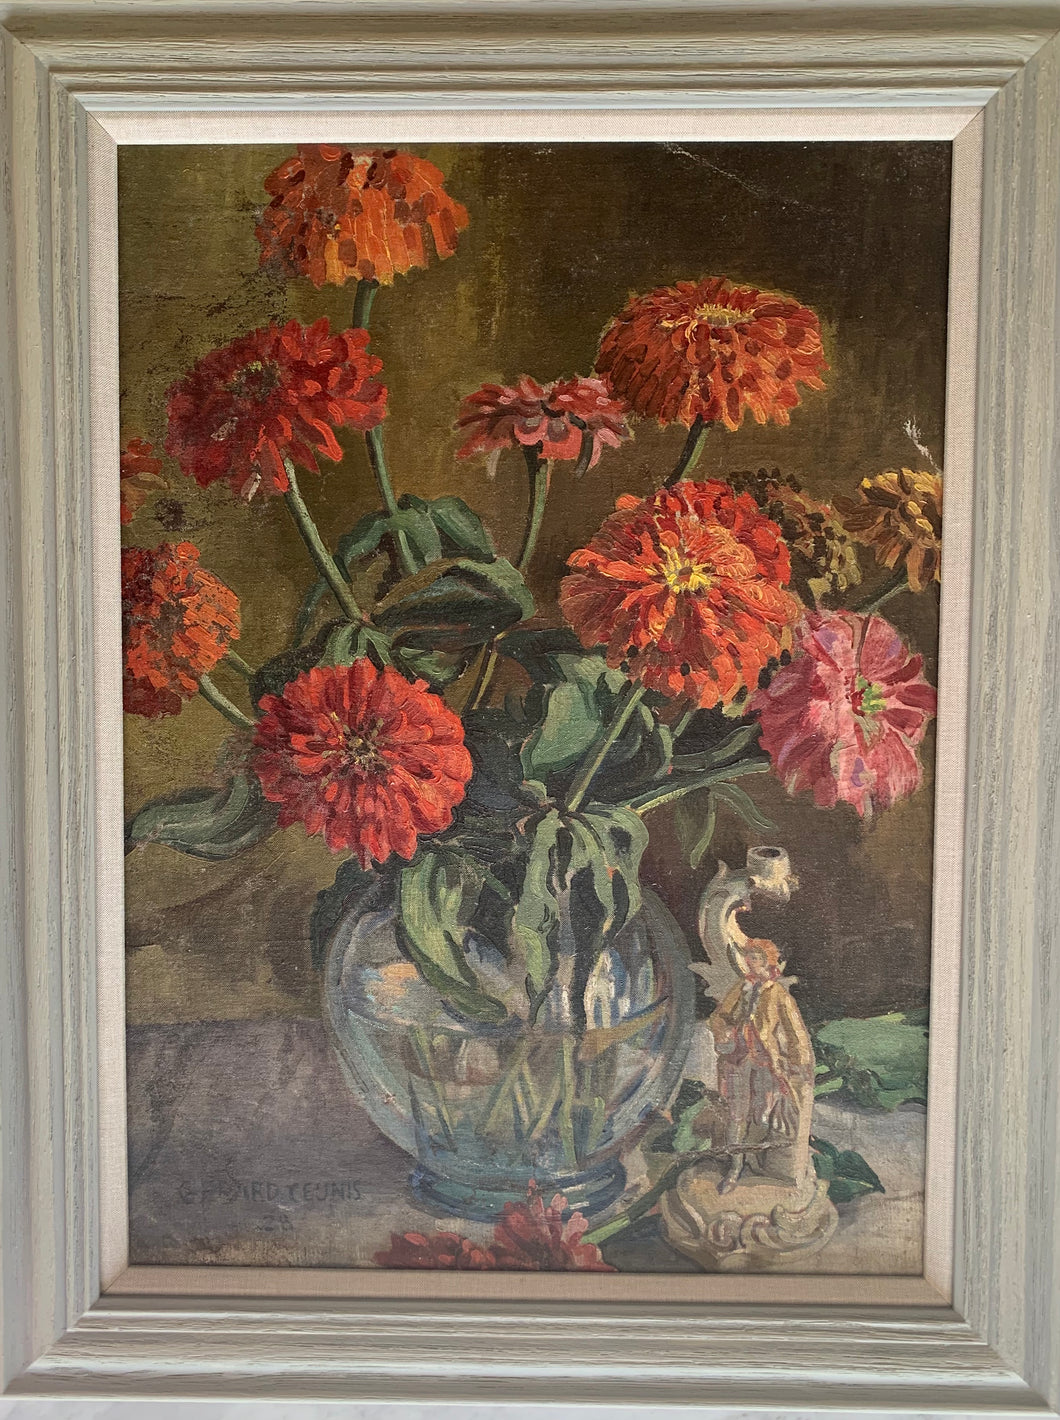 Oil painting on canvas: Red and orange zinnias in a glass bowl (artist Gerard Ceunis, 1928)